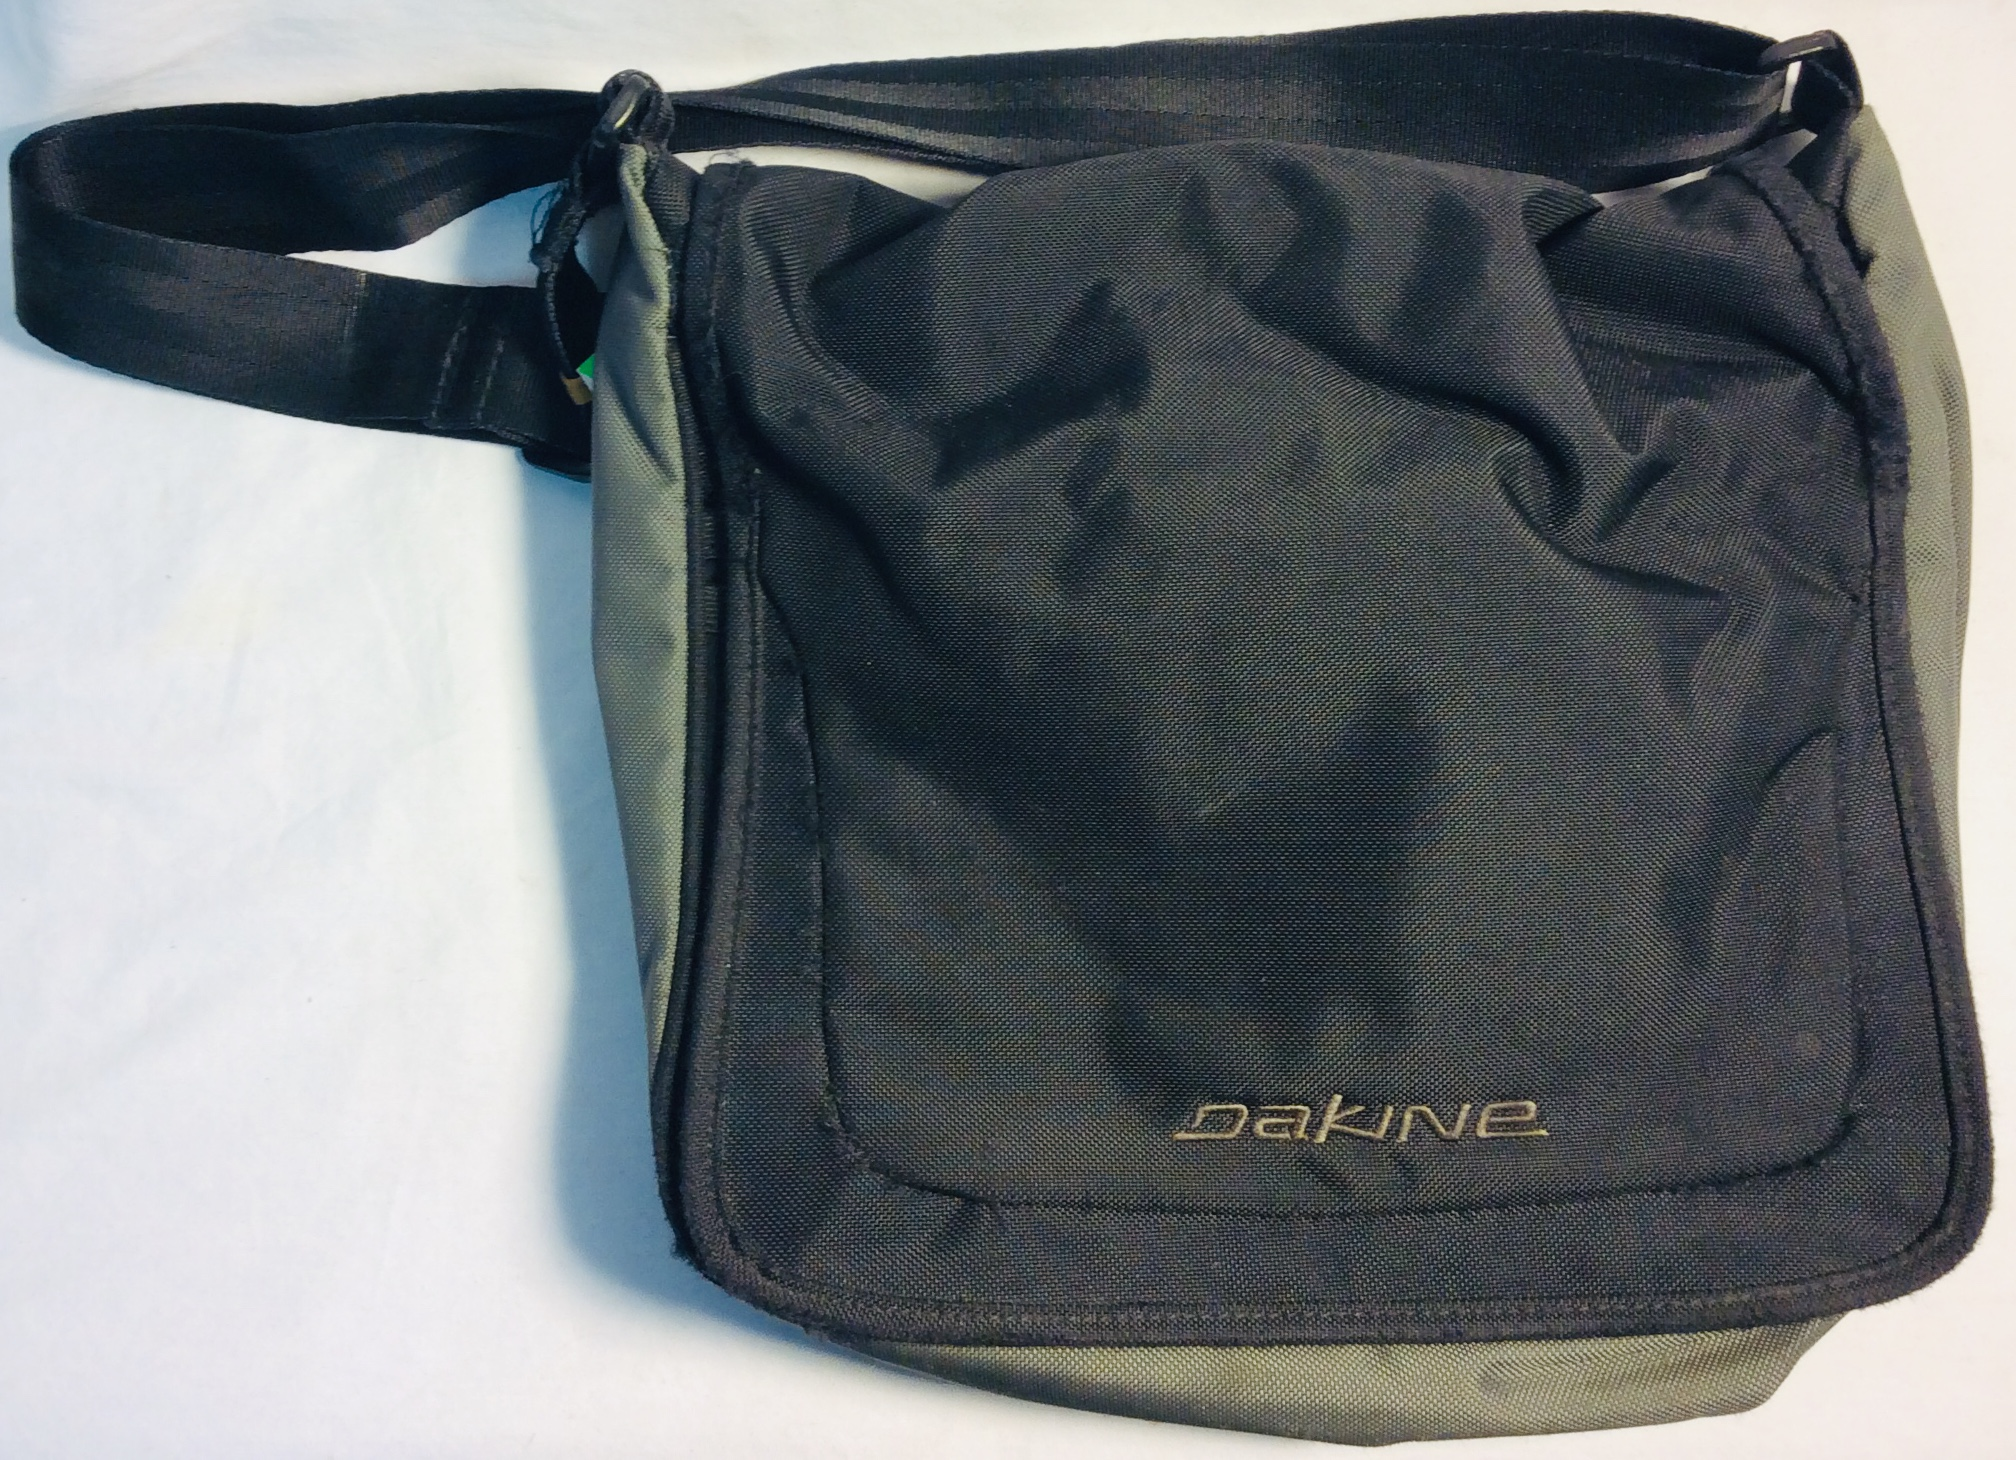 Dakine Black and grey nylon shoulder bag with magnetic clasp